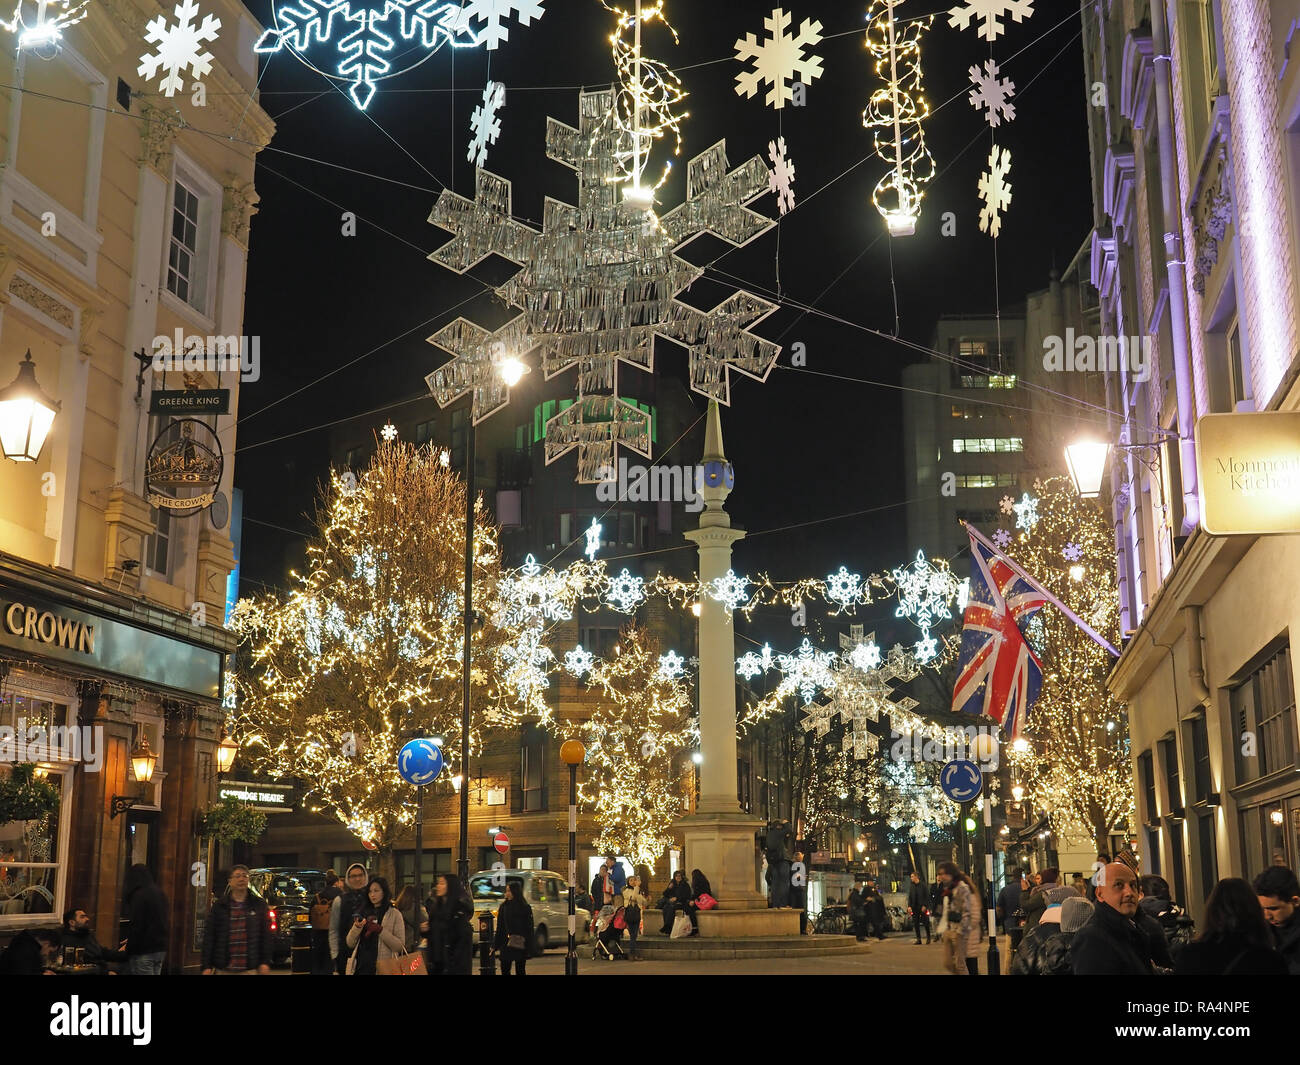 View of the London Seven Dials Christmas street decorations at night - Stock Image